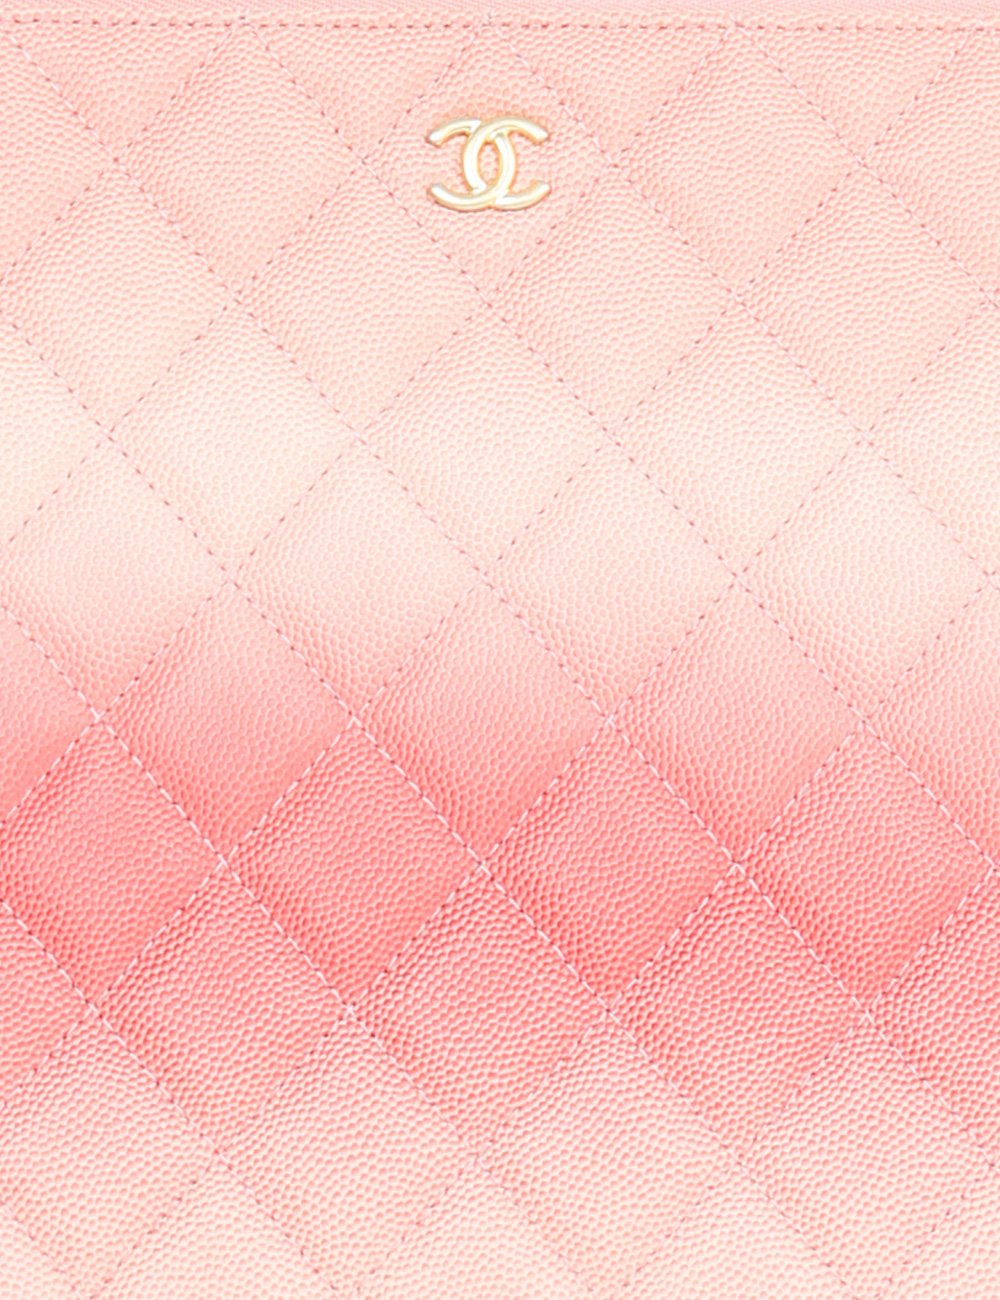 CHANEL ACCESSORIES One size / Pink CHANEL Medium Classic O Case in dégradé grained quilted leather